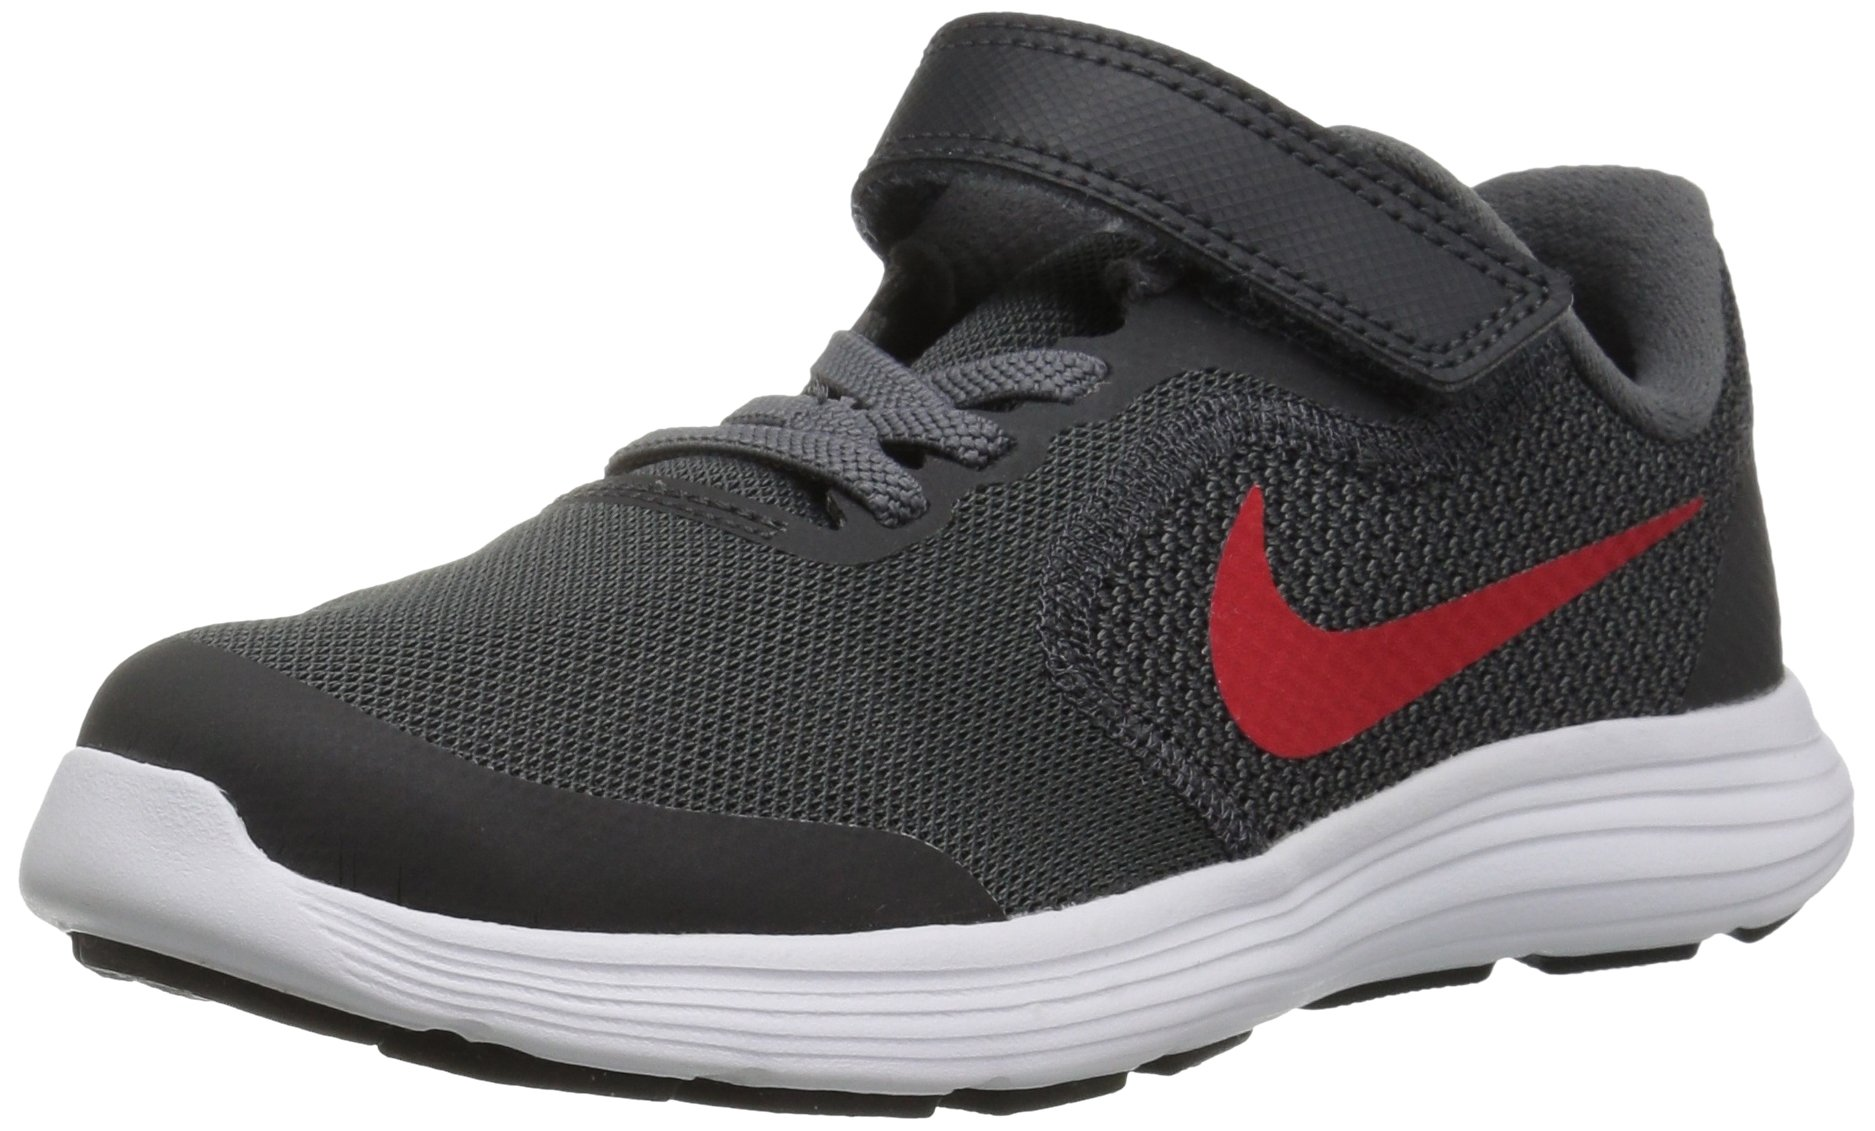 NIKE Kids' Revolution 3 (Psv) Running-Shoes, Black/University Red/Dark Grey, 1 M US Little Kid